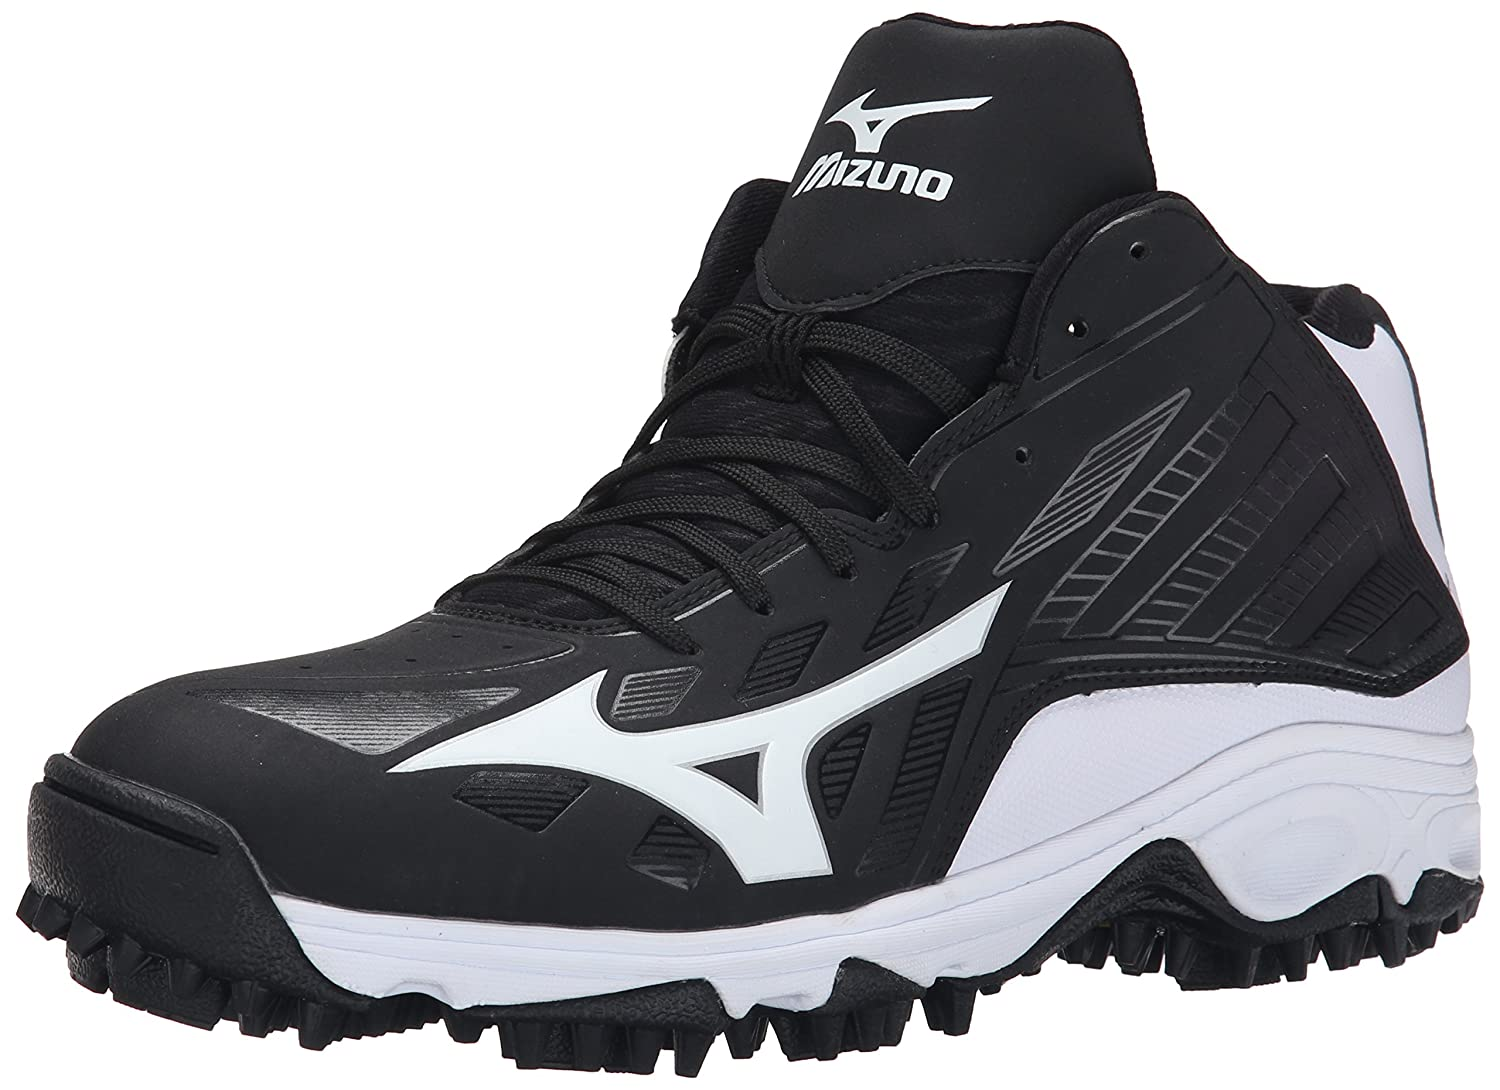 Mizuno Mens 9 Spike ADV Erupt 3 Multi-Sport Mid-Cut Softball Cleat